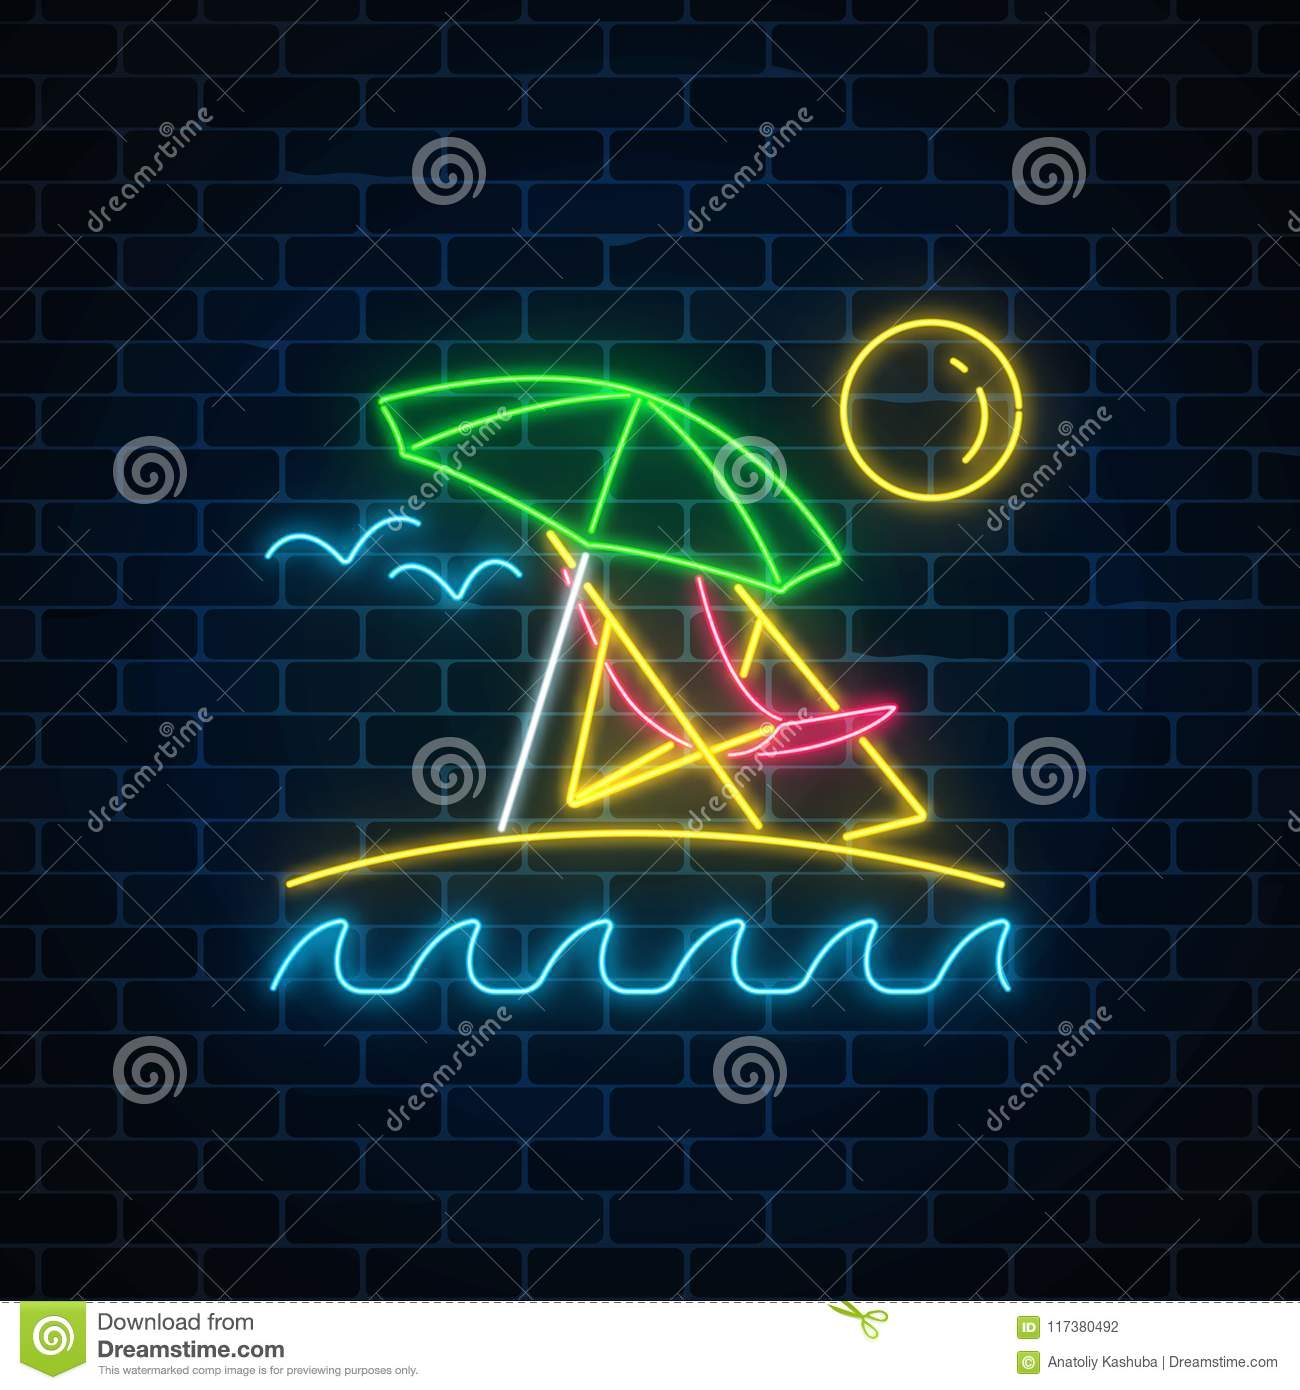 UmbrellaSunChaise Ocean And Neon With Summer Longue Glowing Sign rxhdBQCts